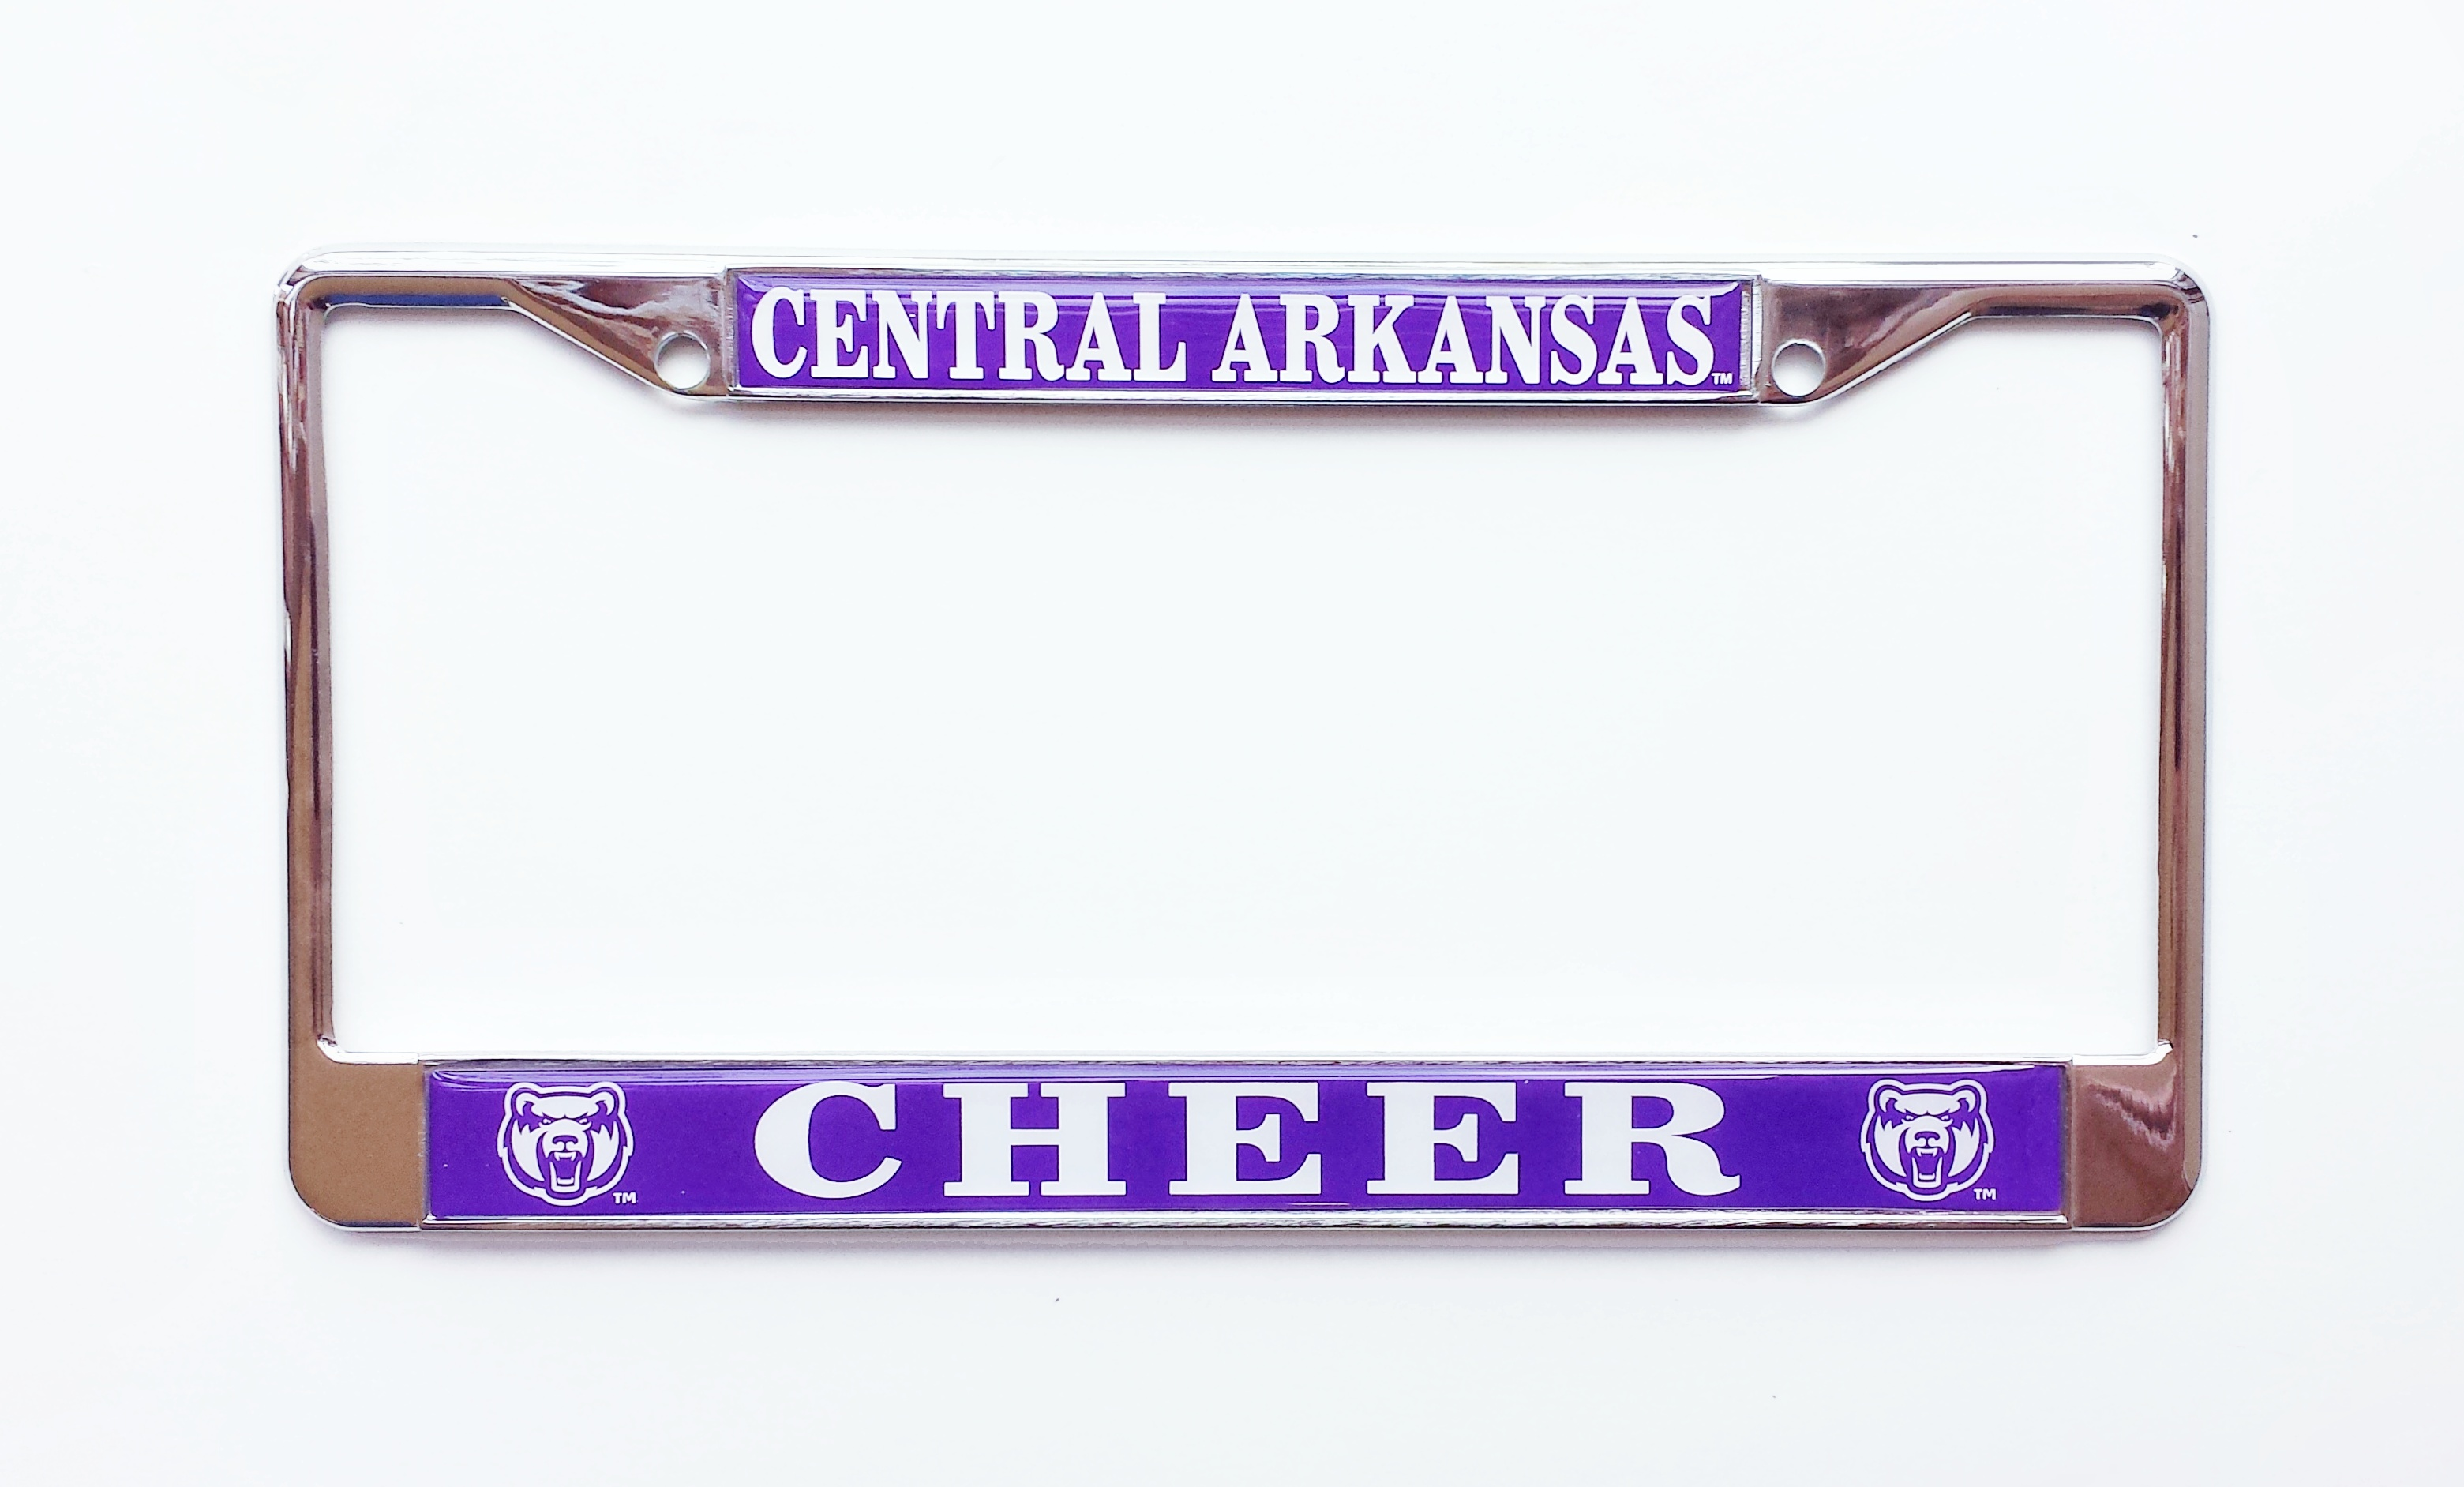 Central Arkansas Cheer License Frame